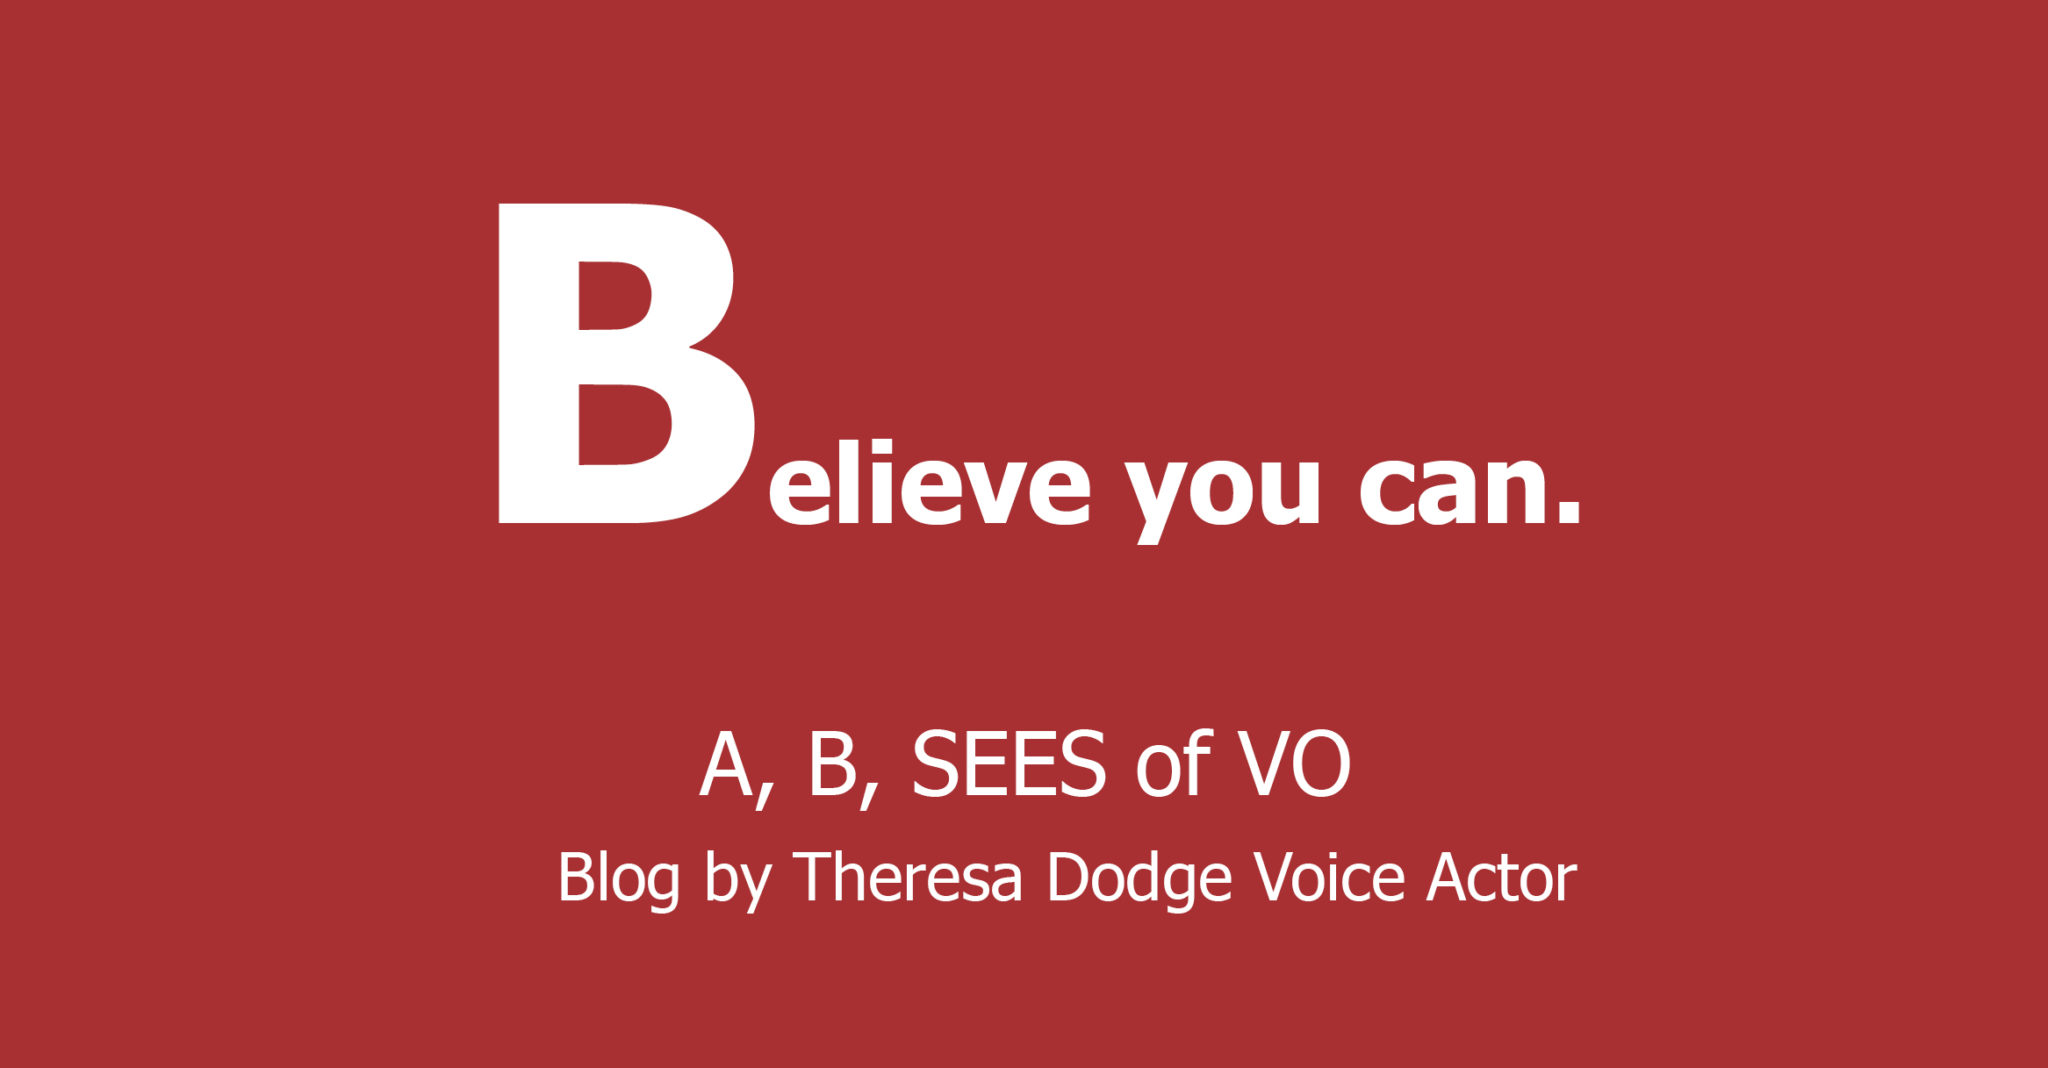 Believe You Can A, B, SEES of VO Blog by Theresa Dodge, Voice Actor